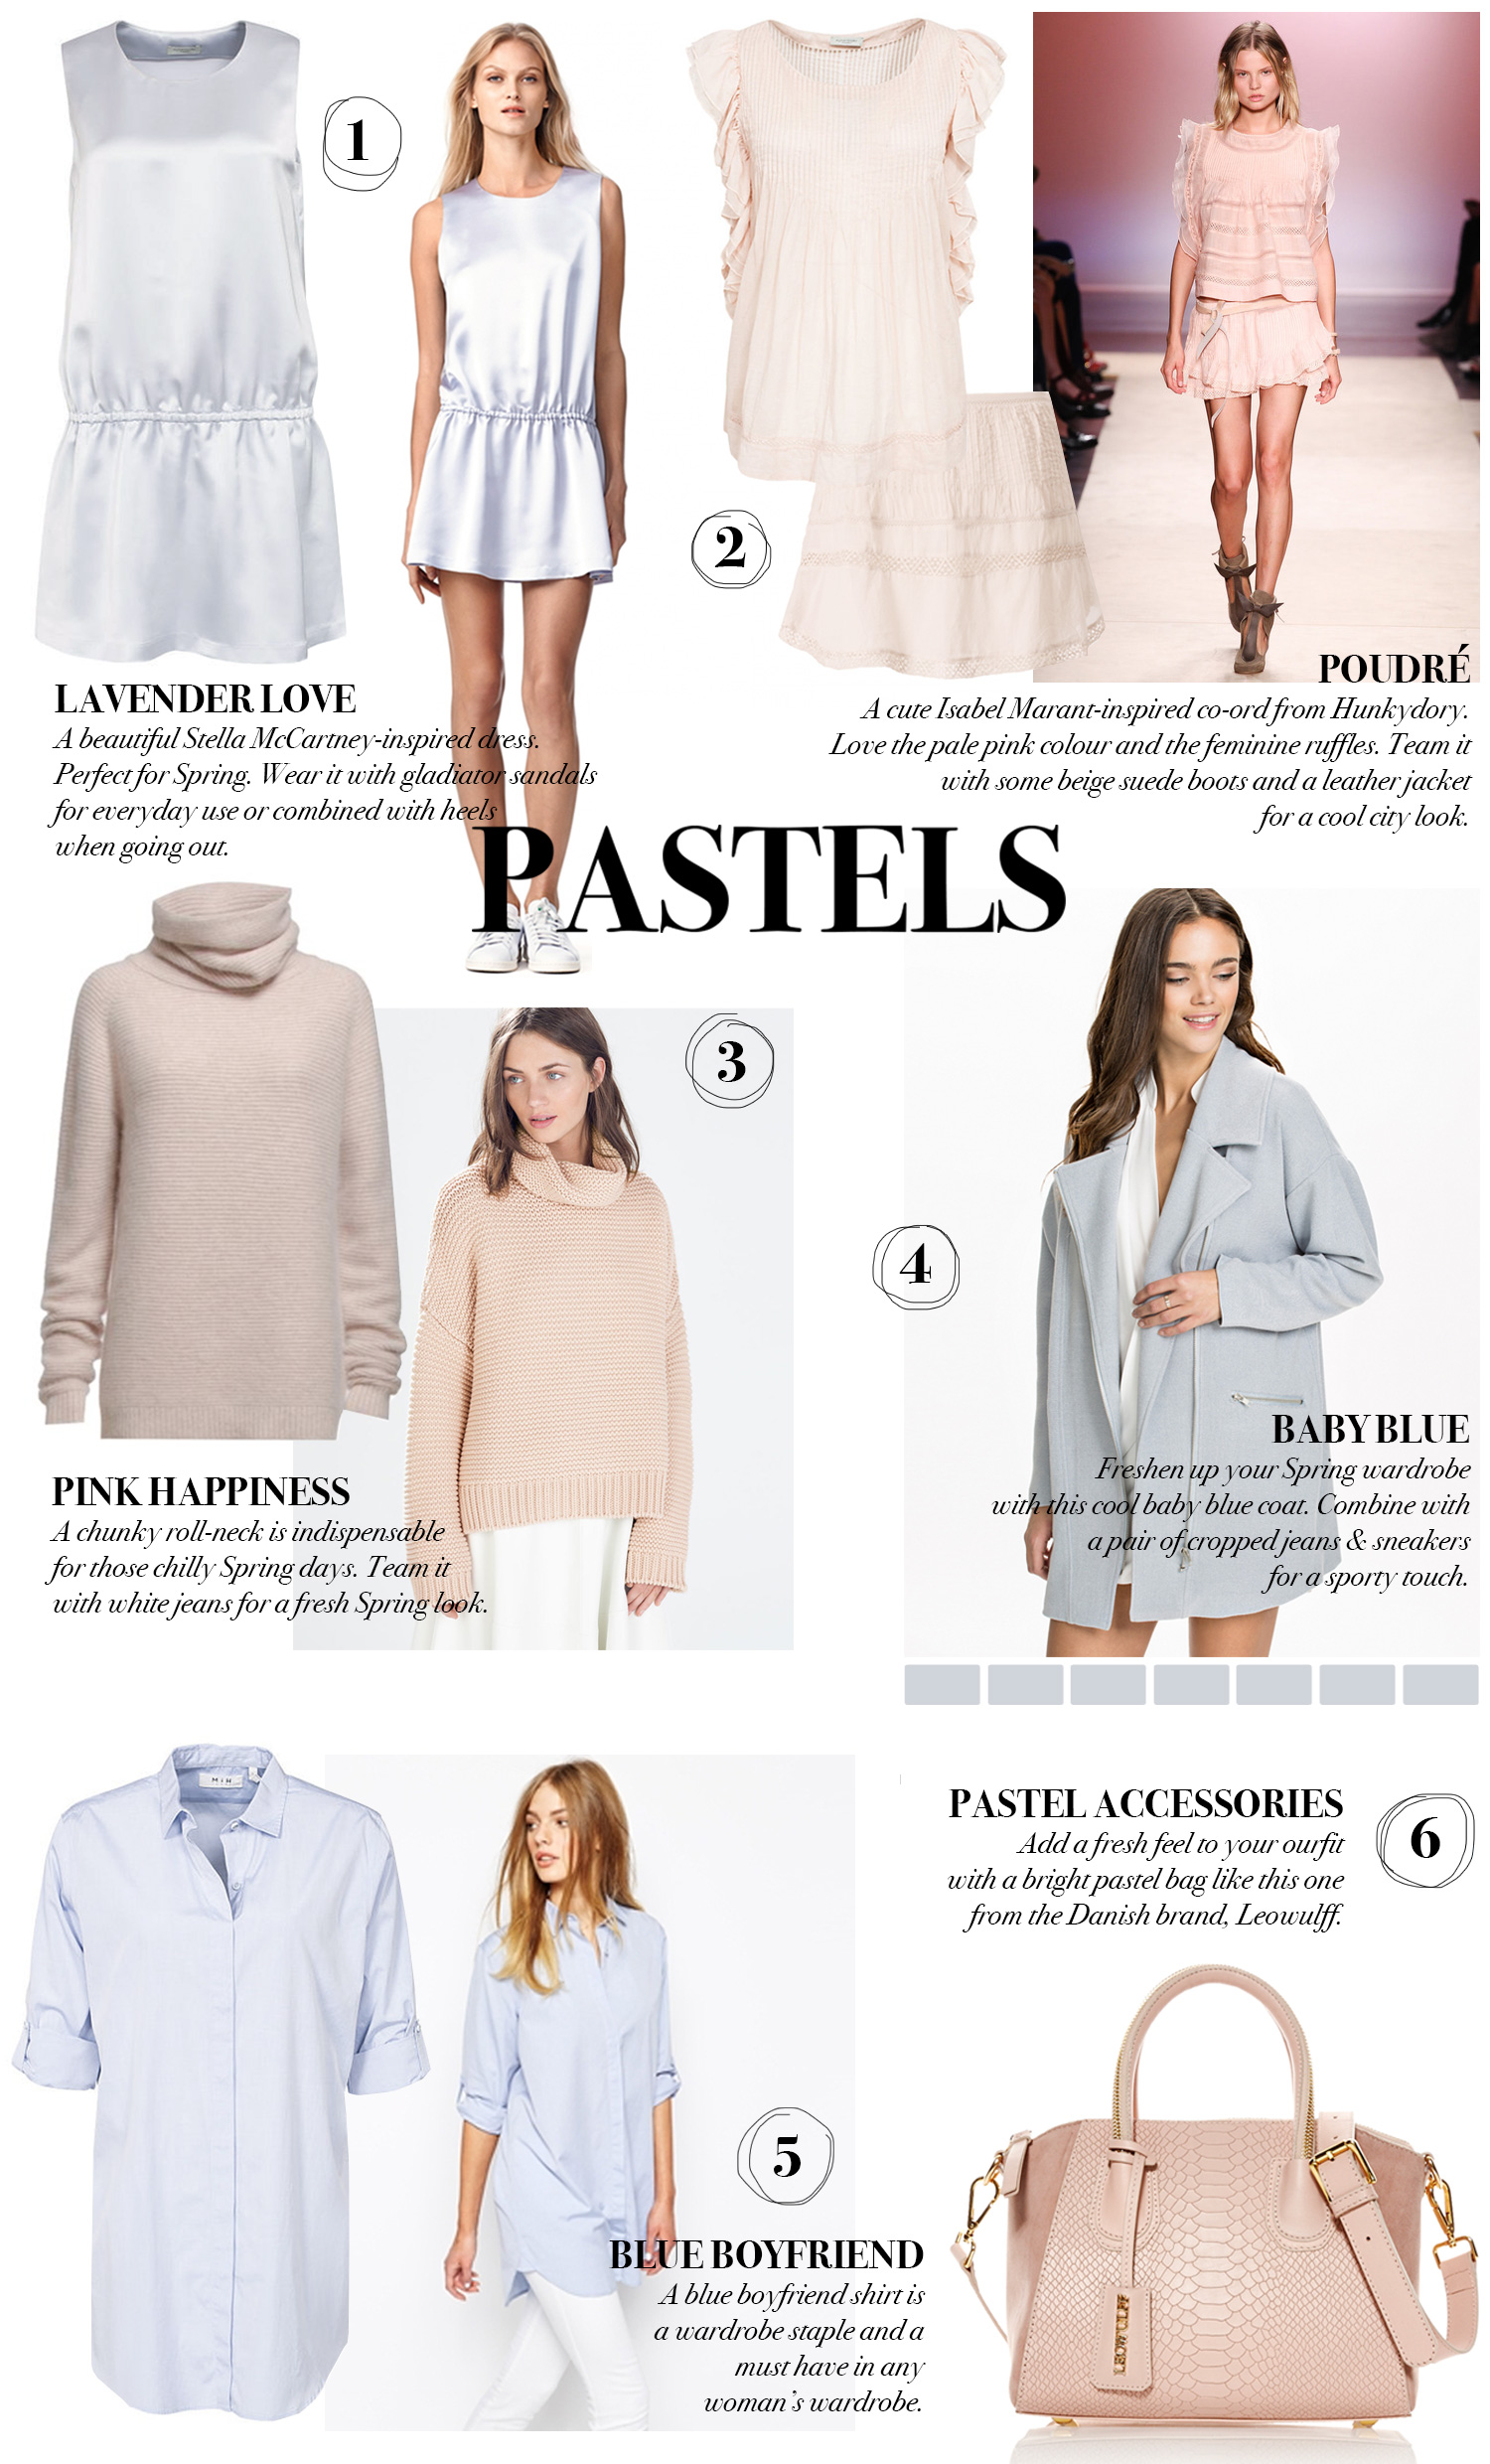 pastels,-streetstyle,-2215-trends@2x